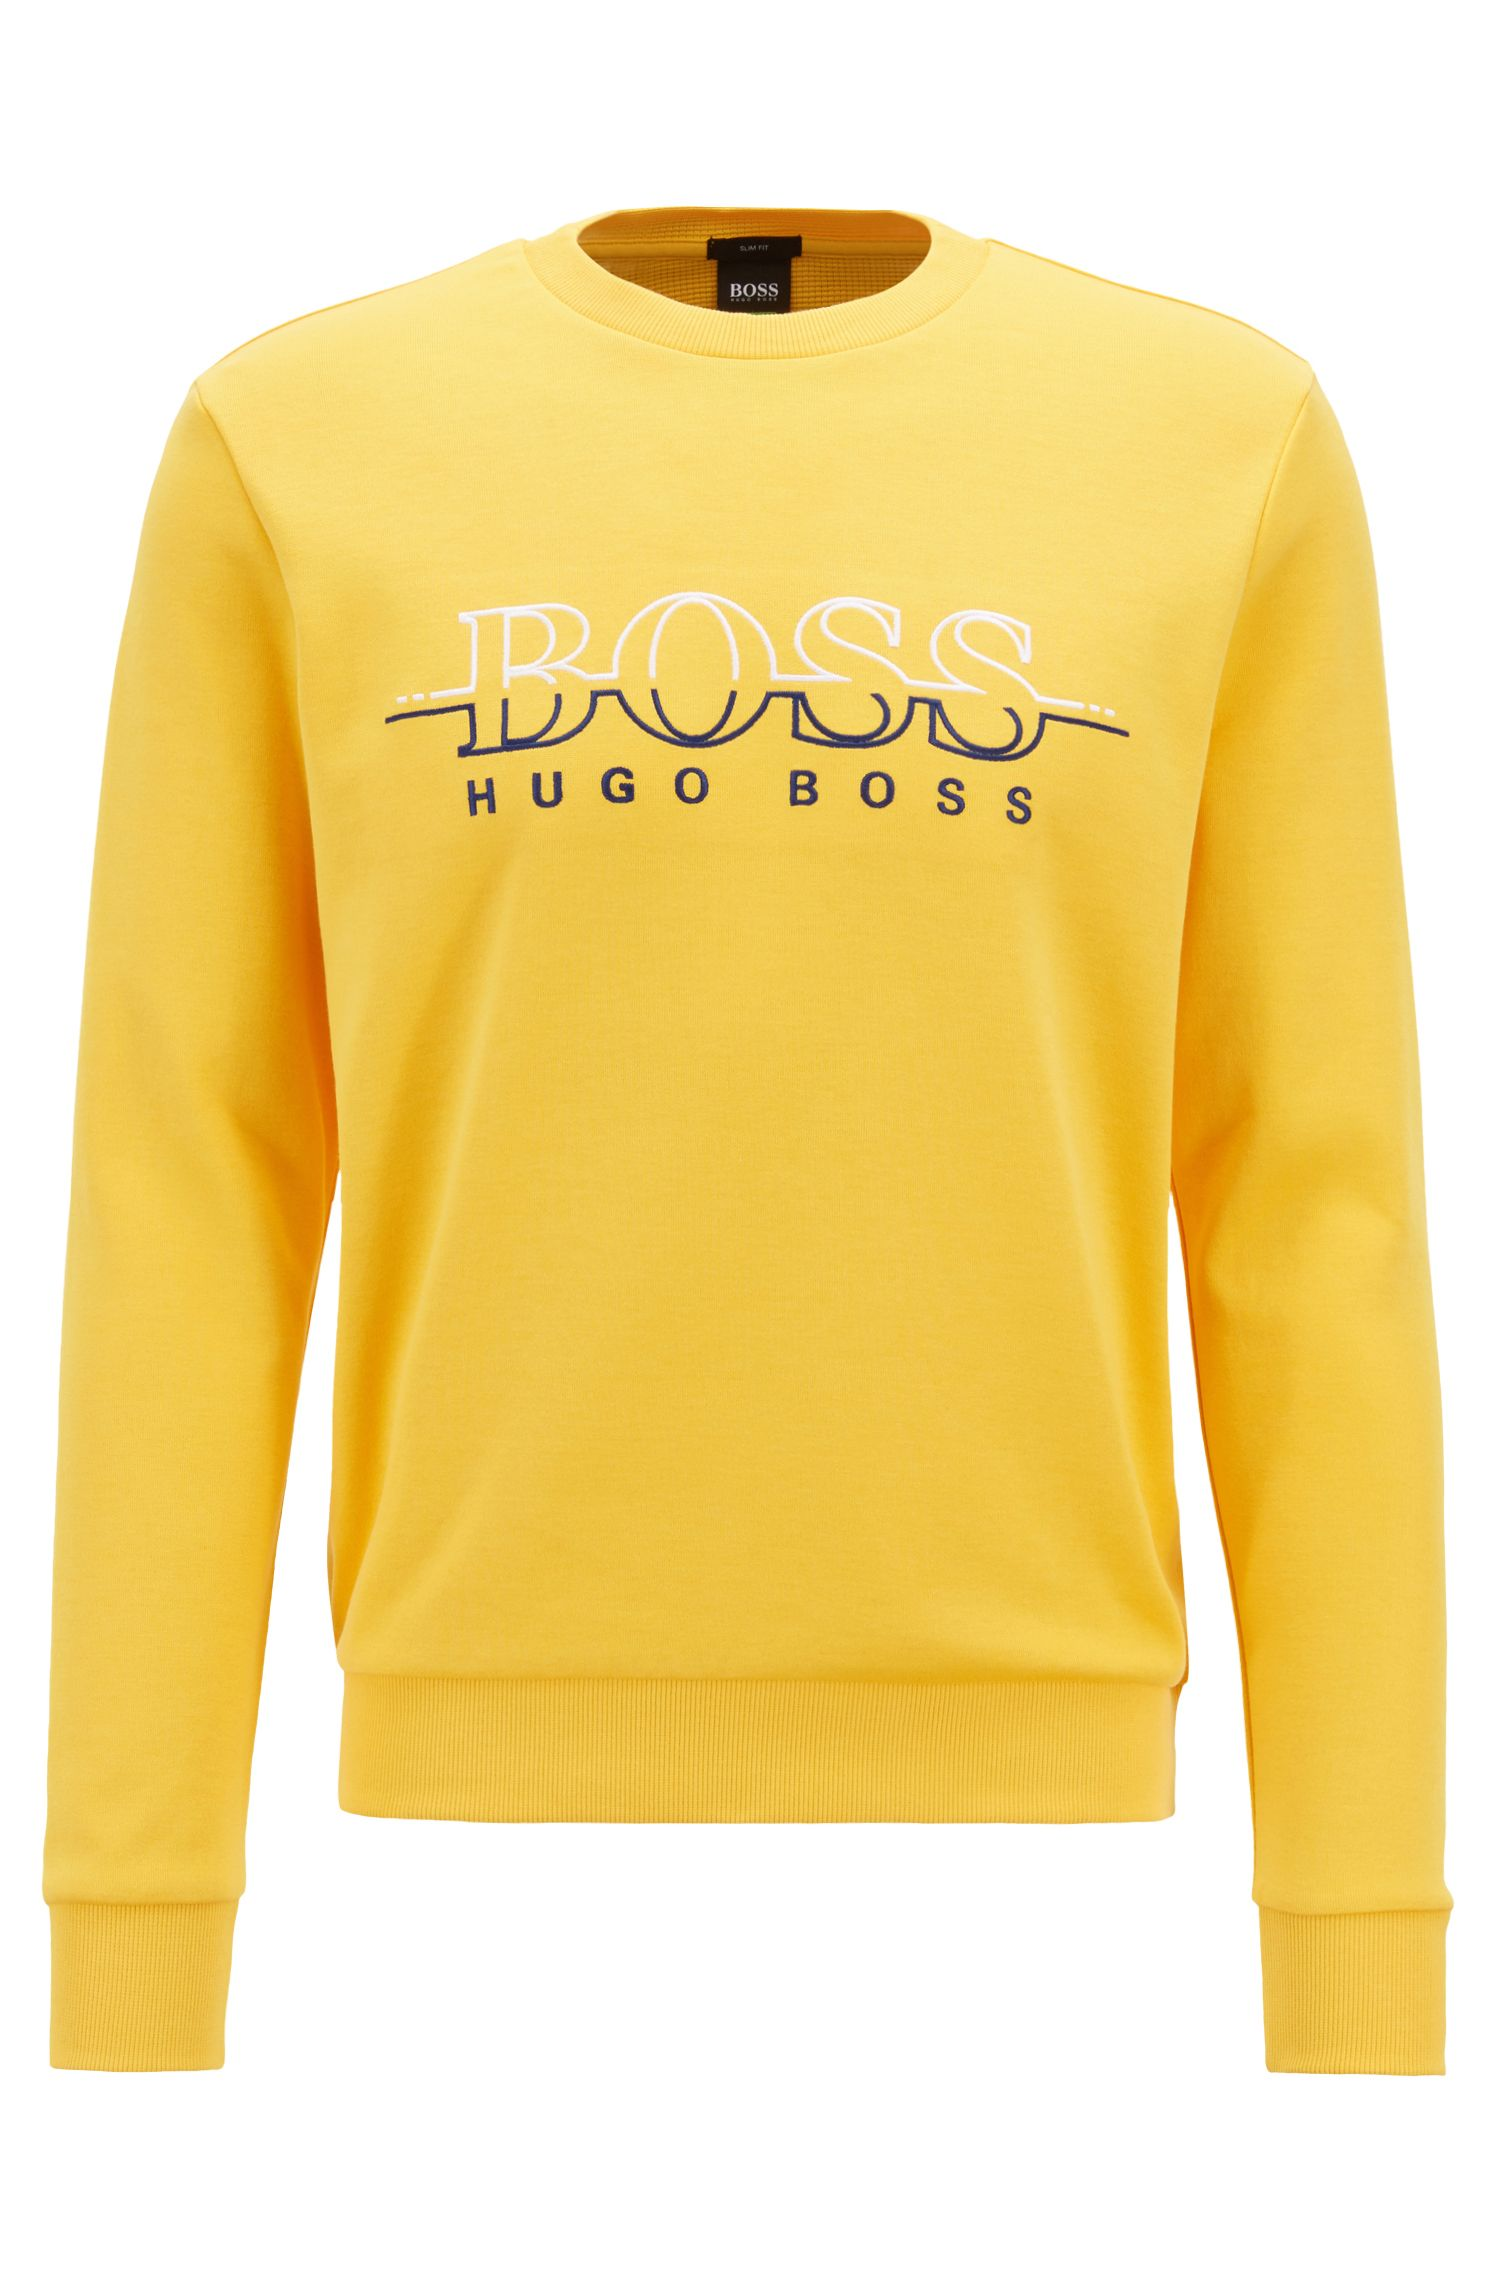 Crew-neck logo sweatshirt in a cotton blend, Yellow